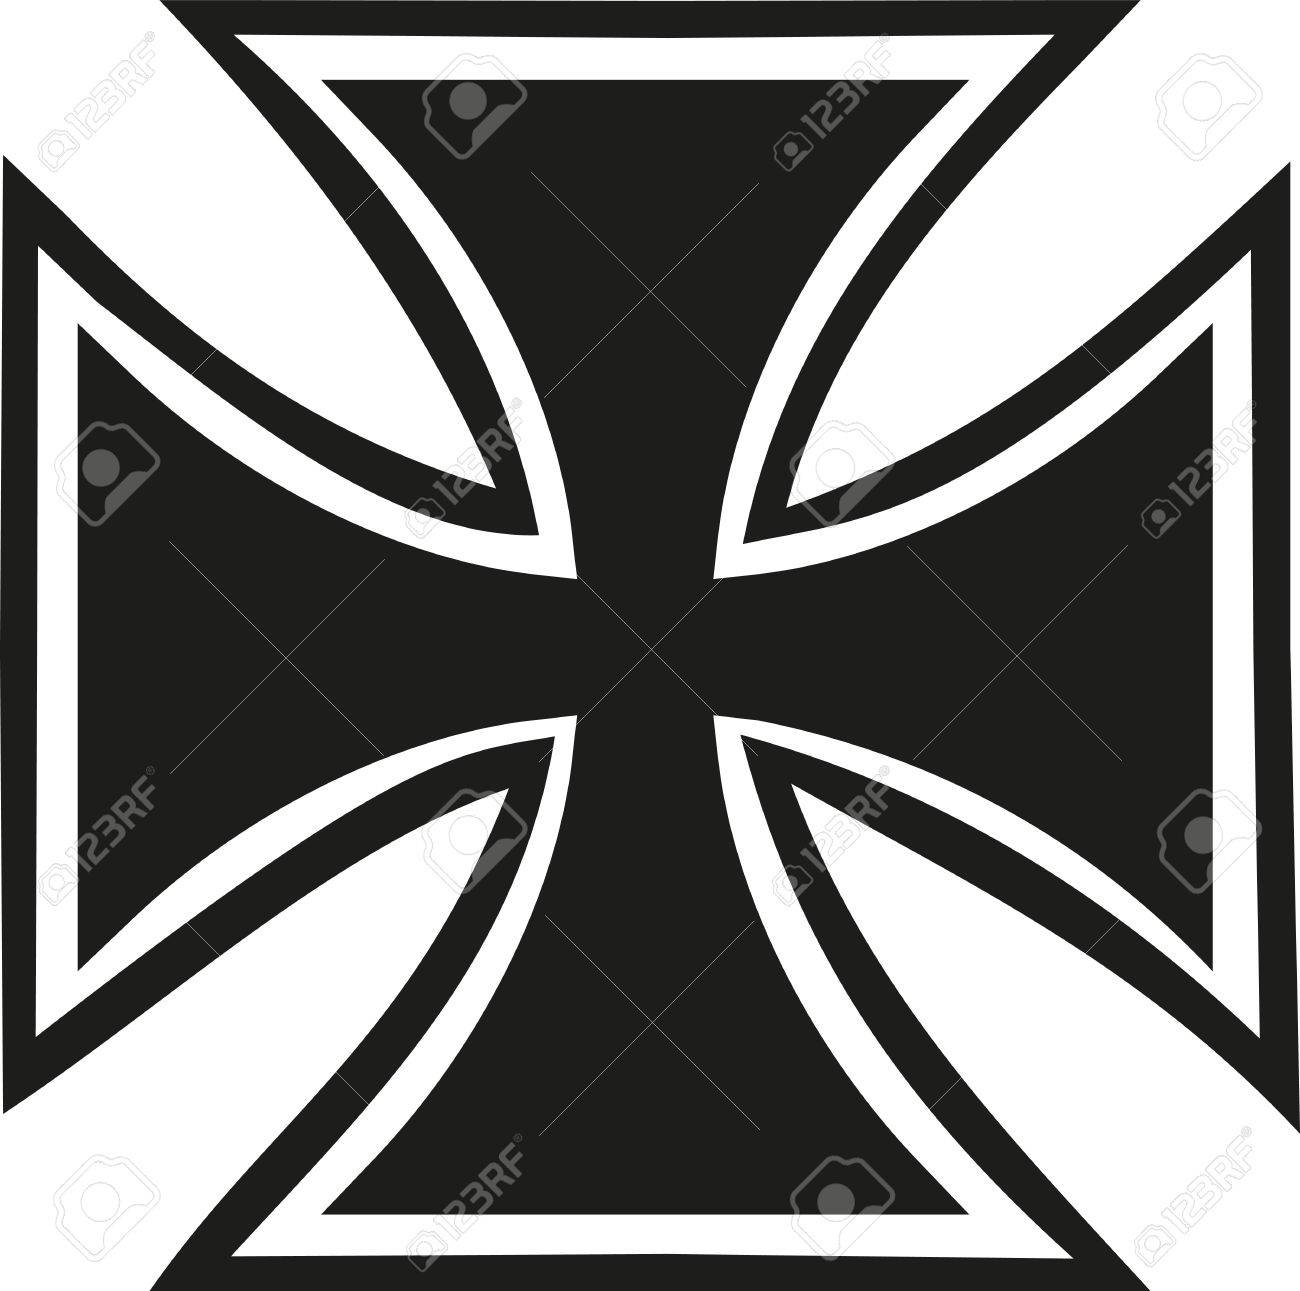 Iron cross with contour.